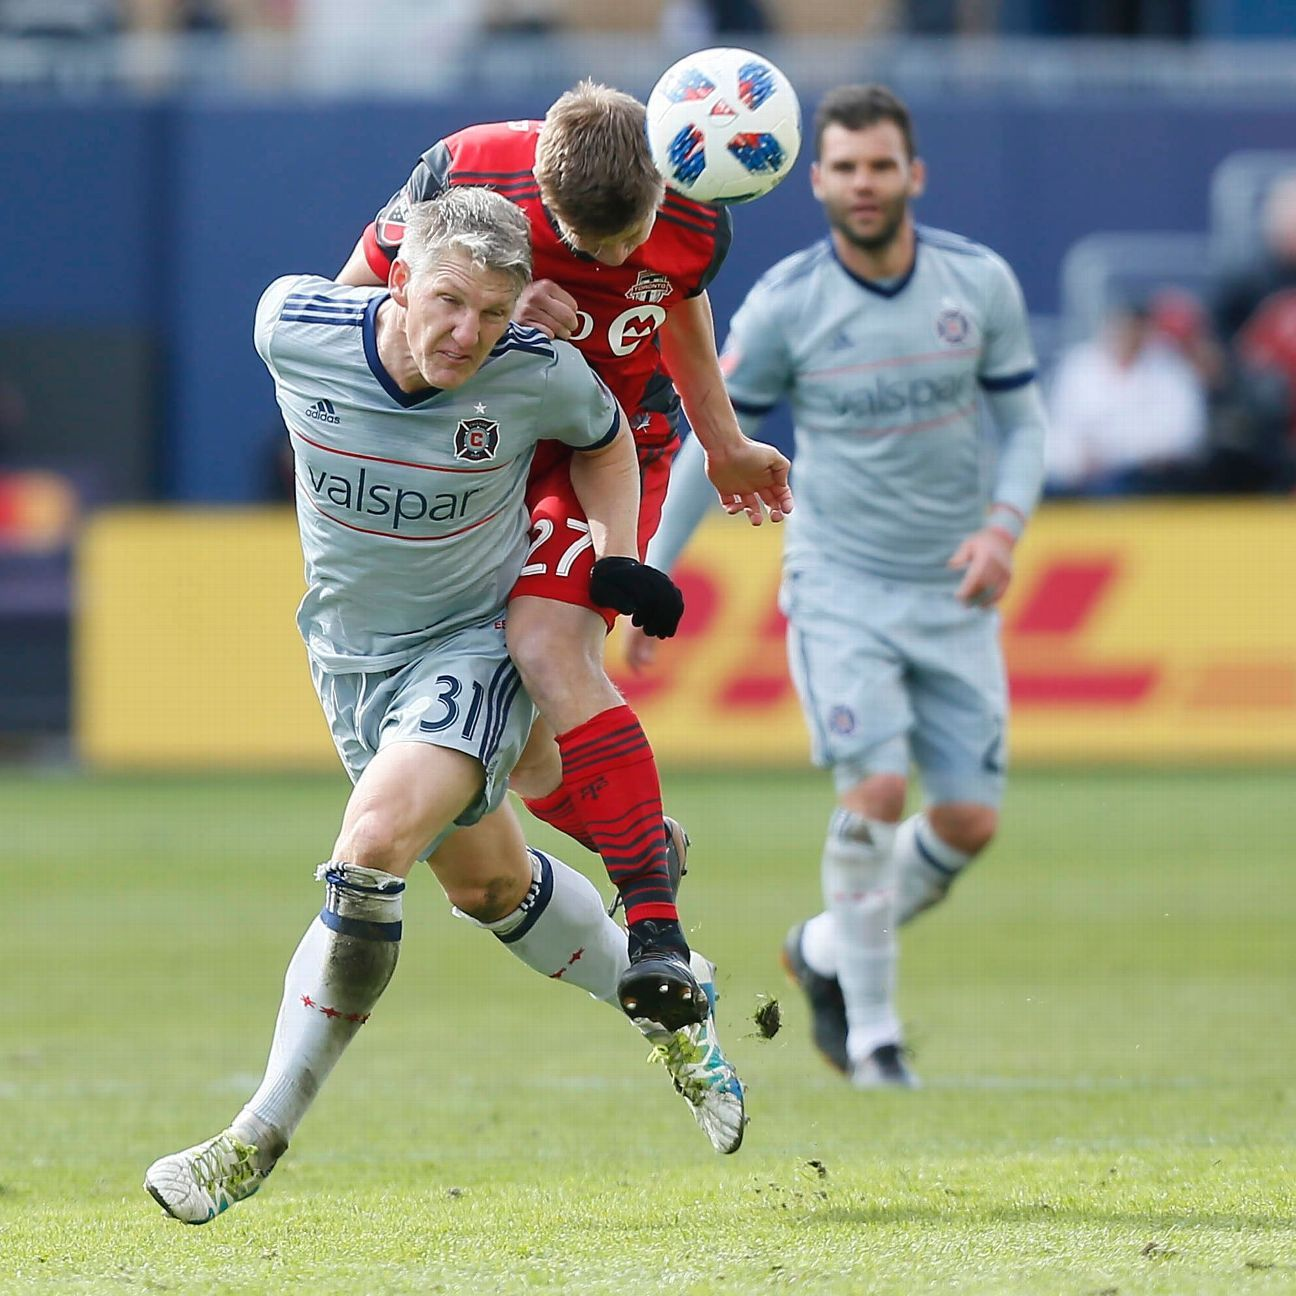 Bastian Schweinsteiger goal helps Chicago Fire rally for draw with Toronto